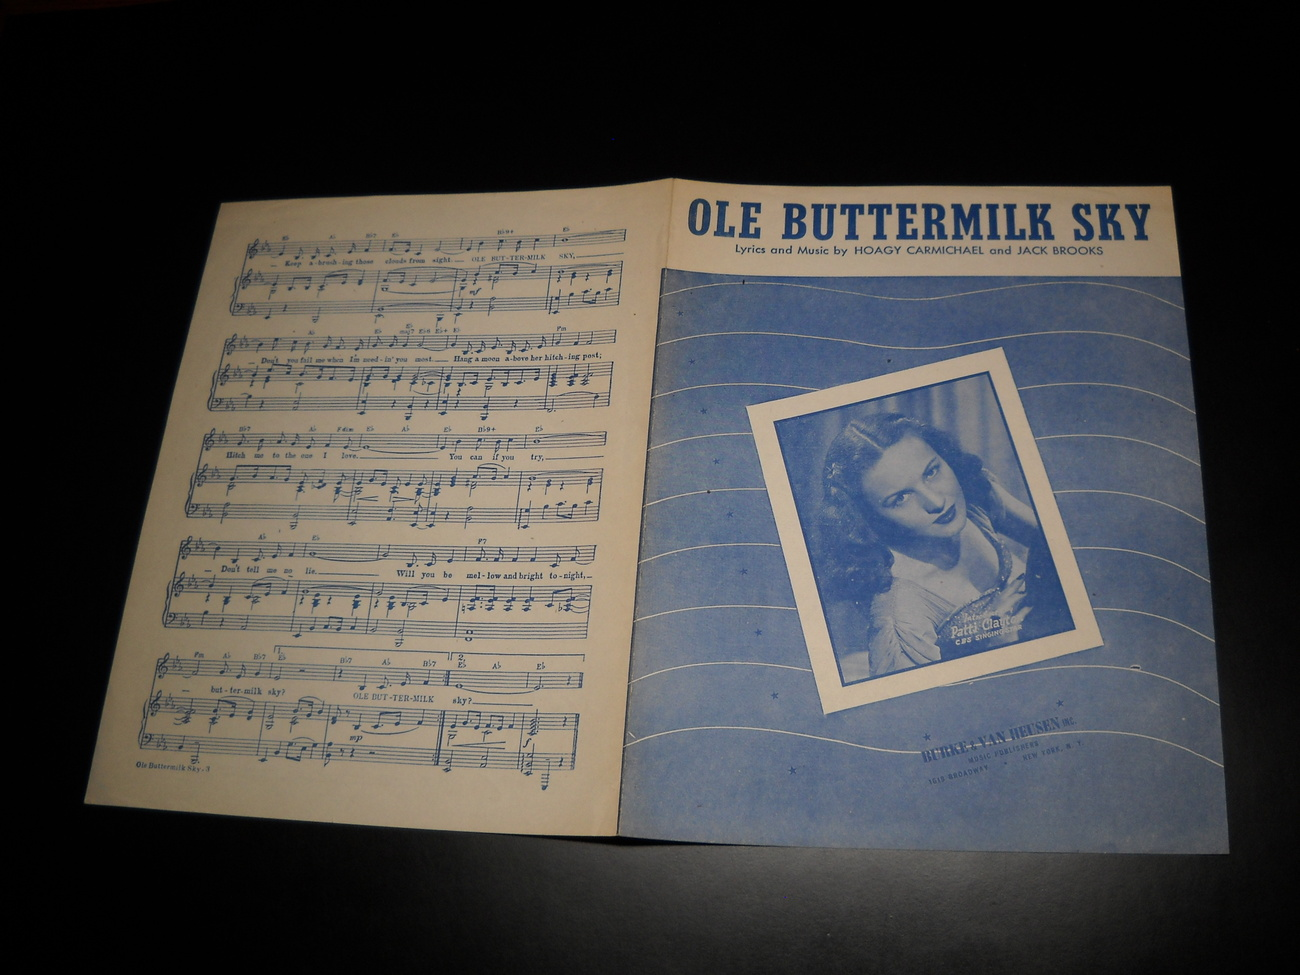 Sheet_music_ole_buttermilk_sky_canyon_passage_patty_clayton_1946_berke_06